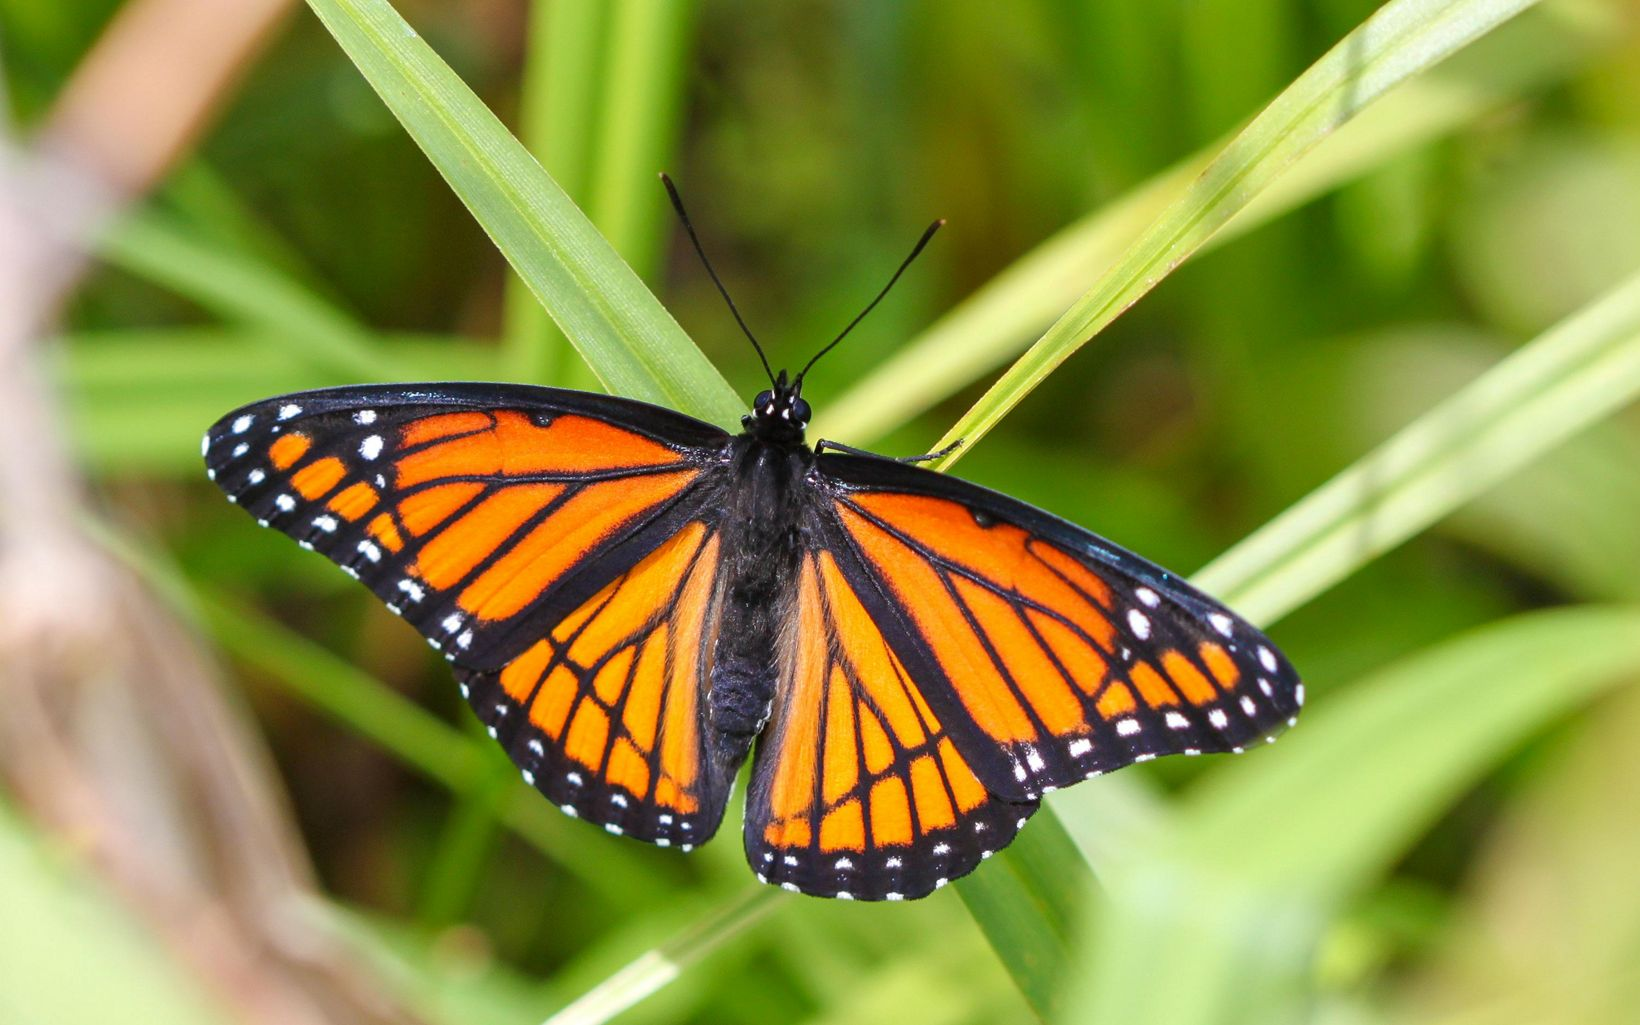 Orange and black butterfly with white dots on green foliage.